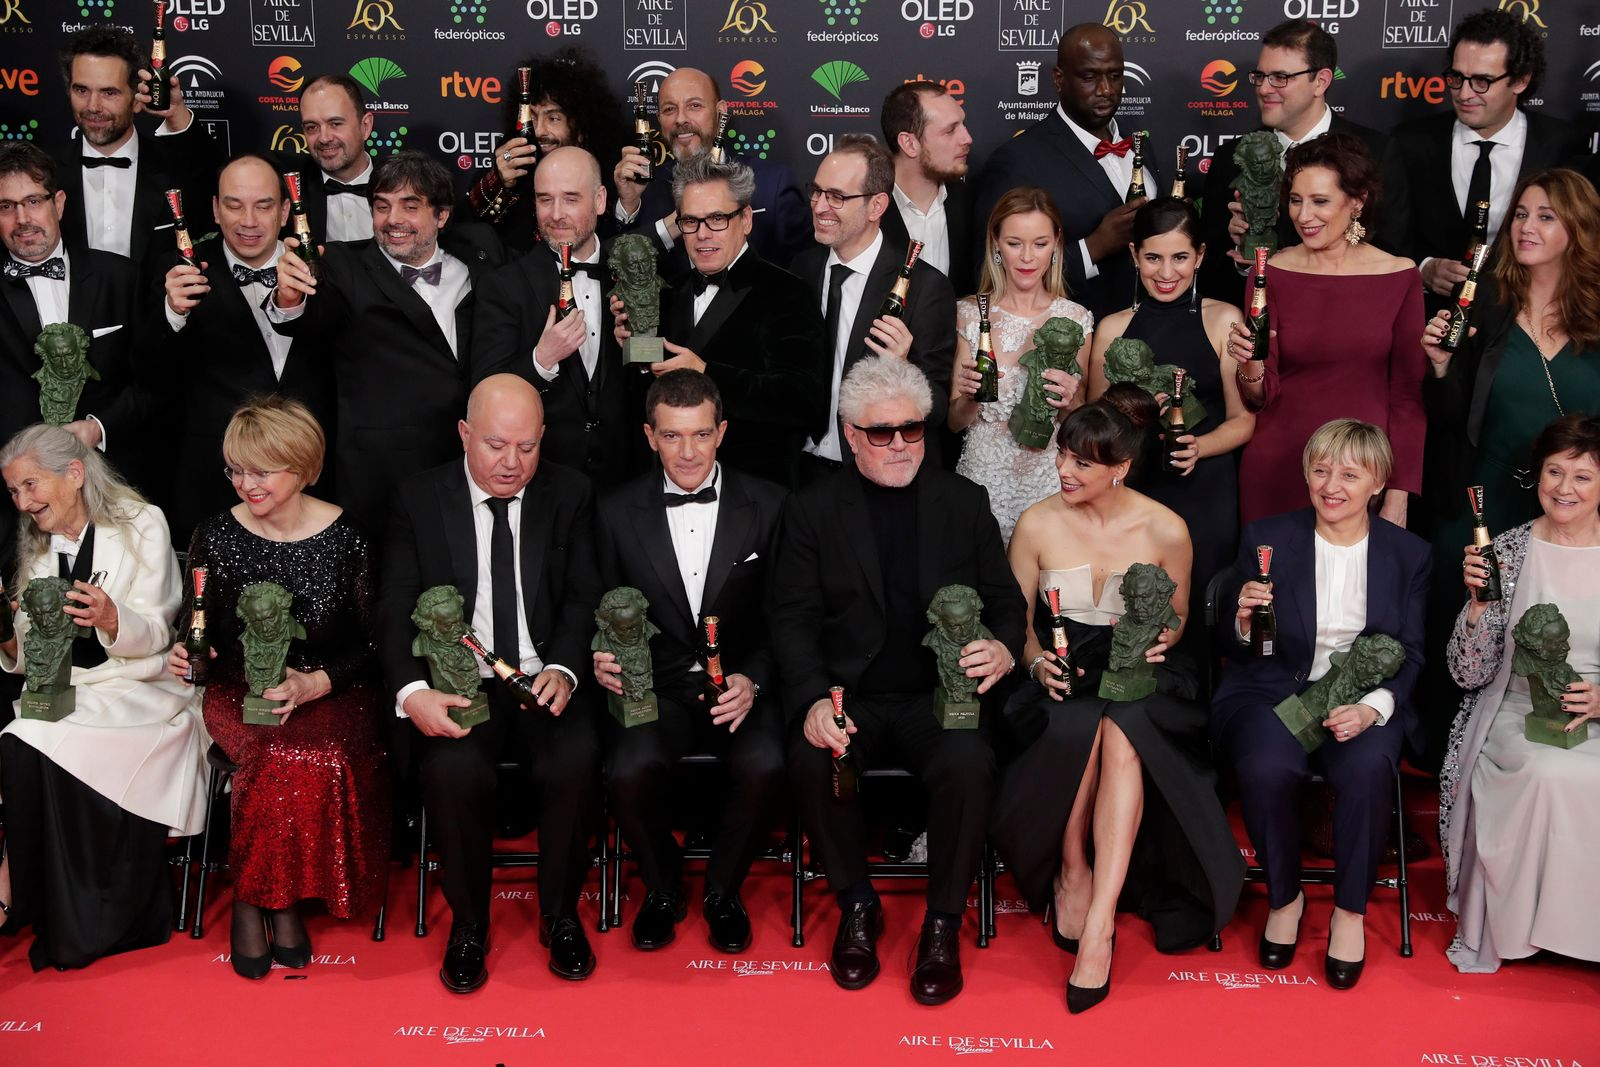 Goya Film Awards winners pose with their trophies for a group photo at the end of the Goya Film Awards Ceremony in Malaga, southern Spain, early Sunday, Jan. 26, 2020. The annual Goya Awards are Spain's main national film awards. (AP Photo/Manu Fernandez)